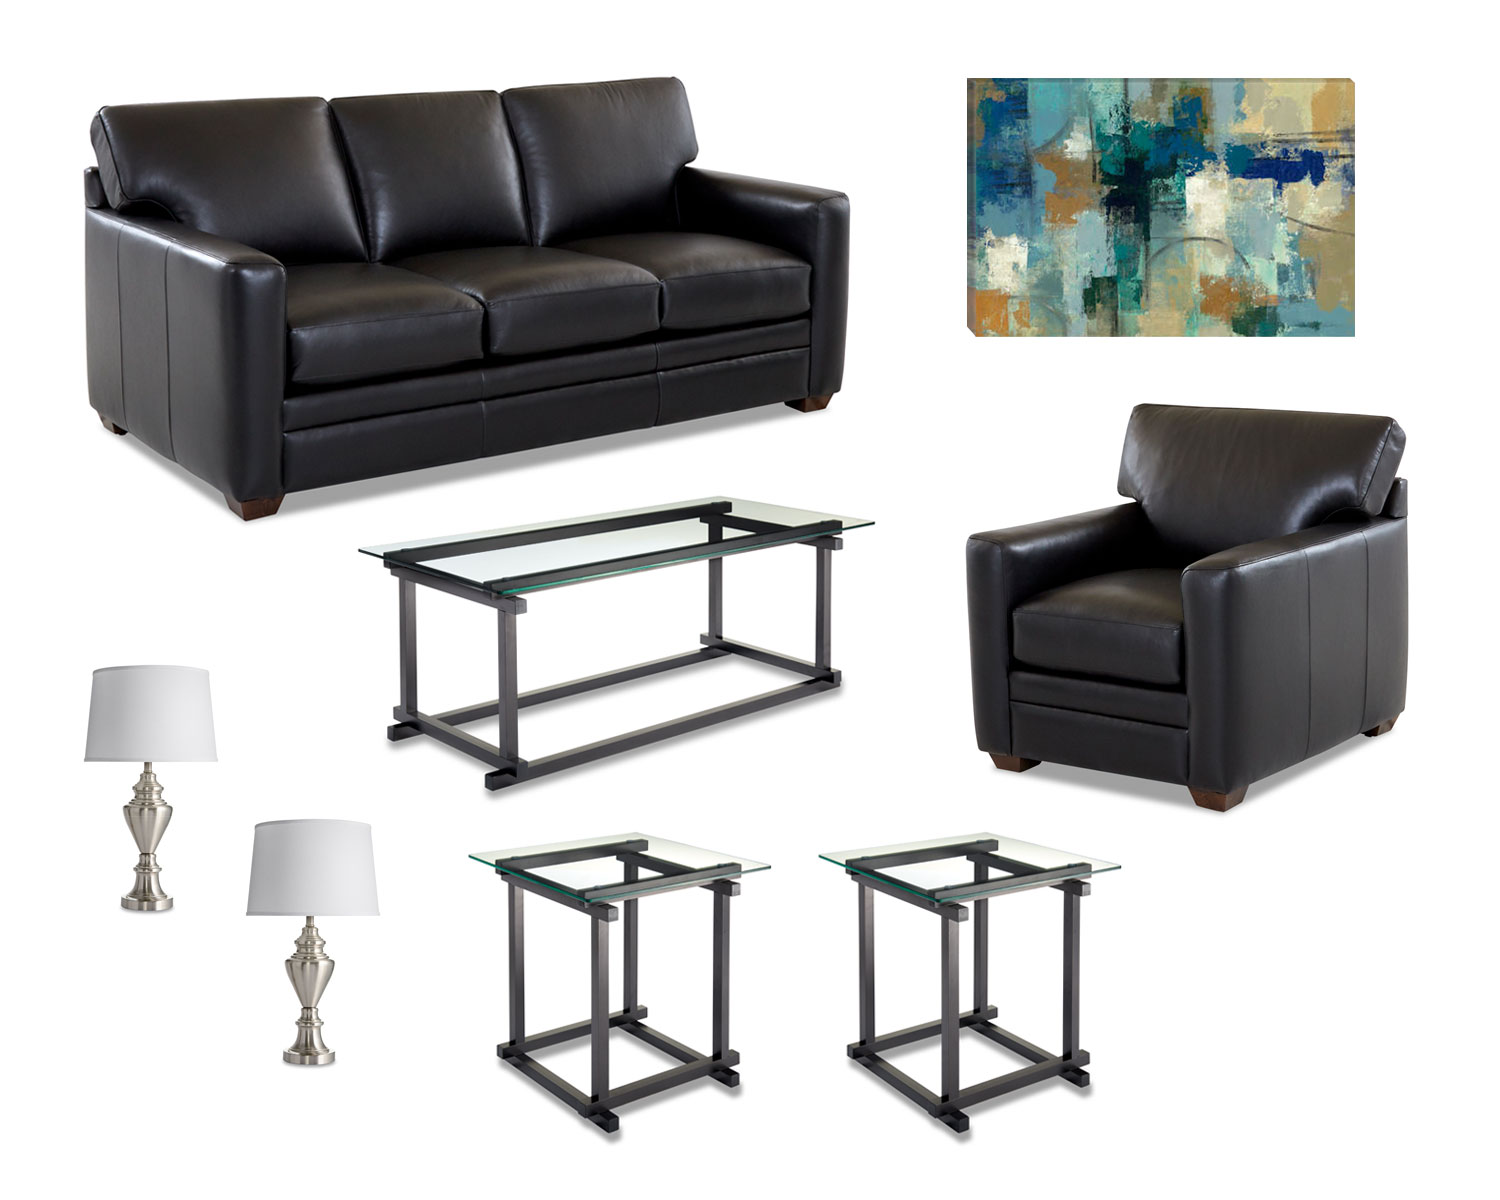 Sofa, Chair, Coffee Table or Ottoman, 2 End Tables, 2 Lamps, 1 Piece of Art